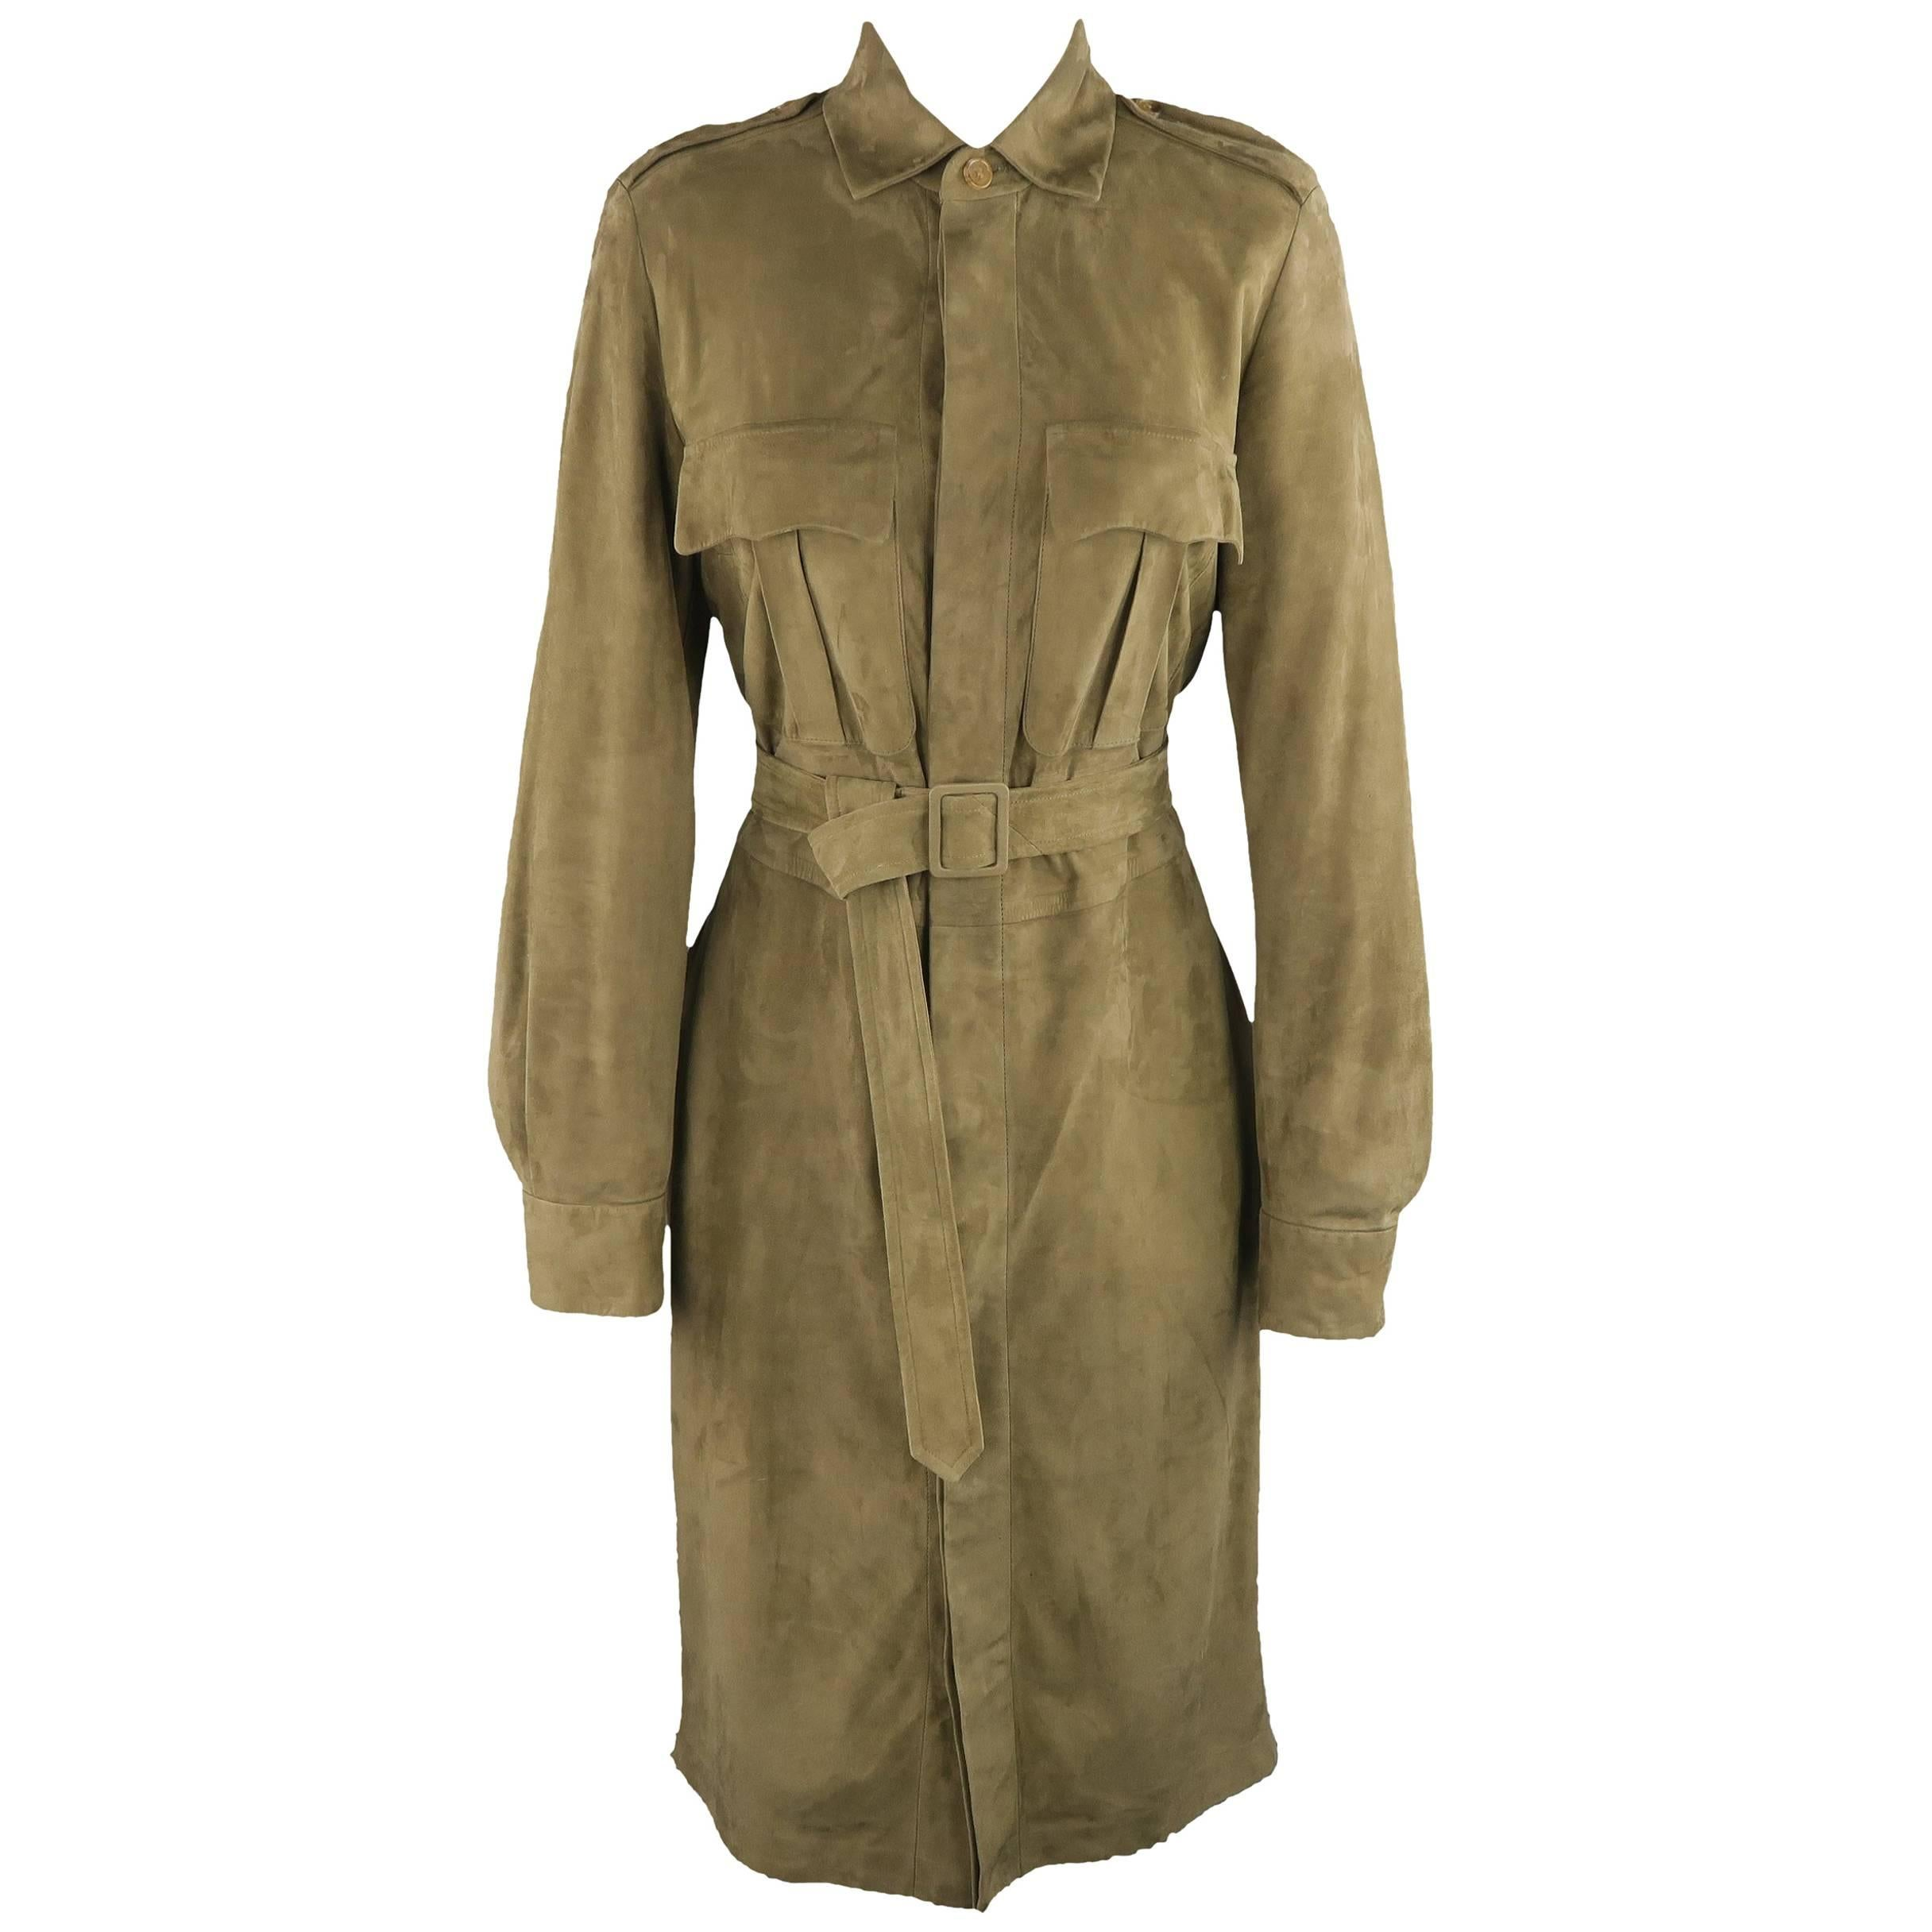 Ralph Lauren Olive Green Suede Safari Dress For Sale